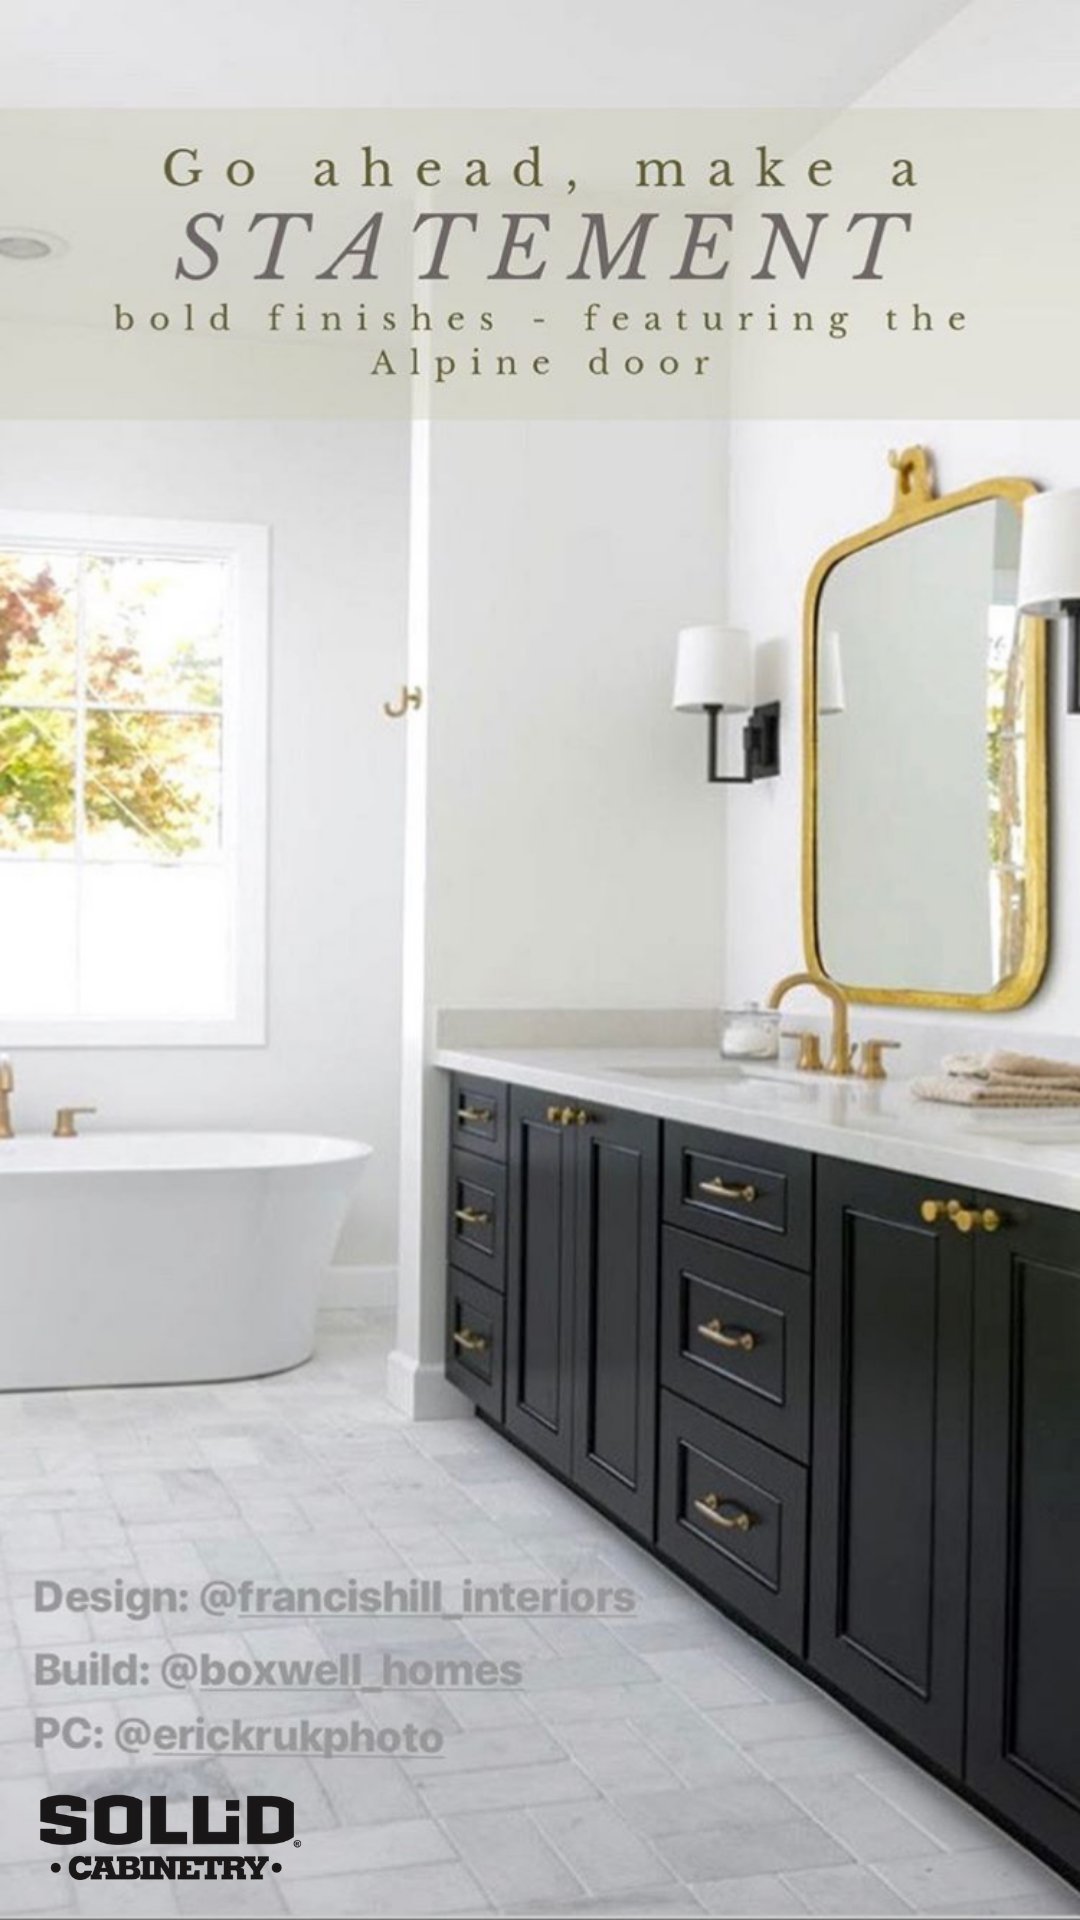 A Bathroom Vanity With Black Cabinets Gold Hardware And A Soaking Bathtub Featuring The Alpin Custom Bathroom Custom Bathroom Vanity Custom Kitchen Cabinets